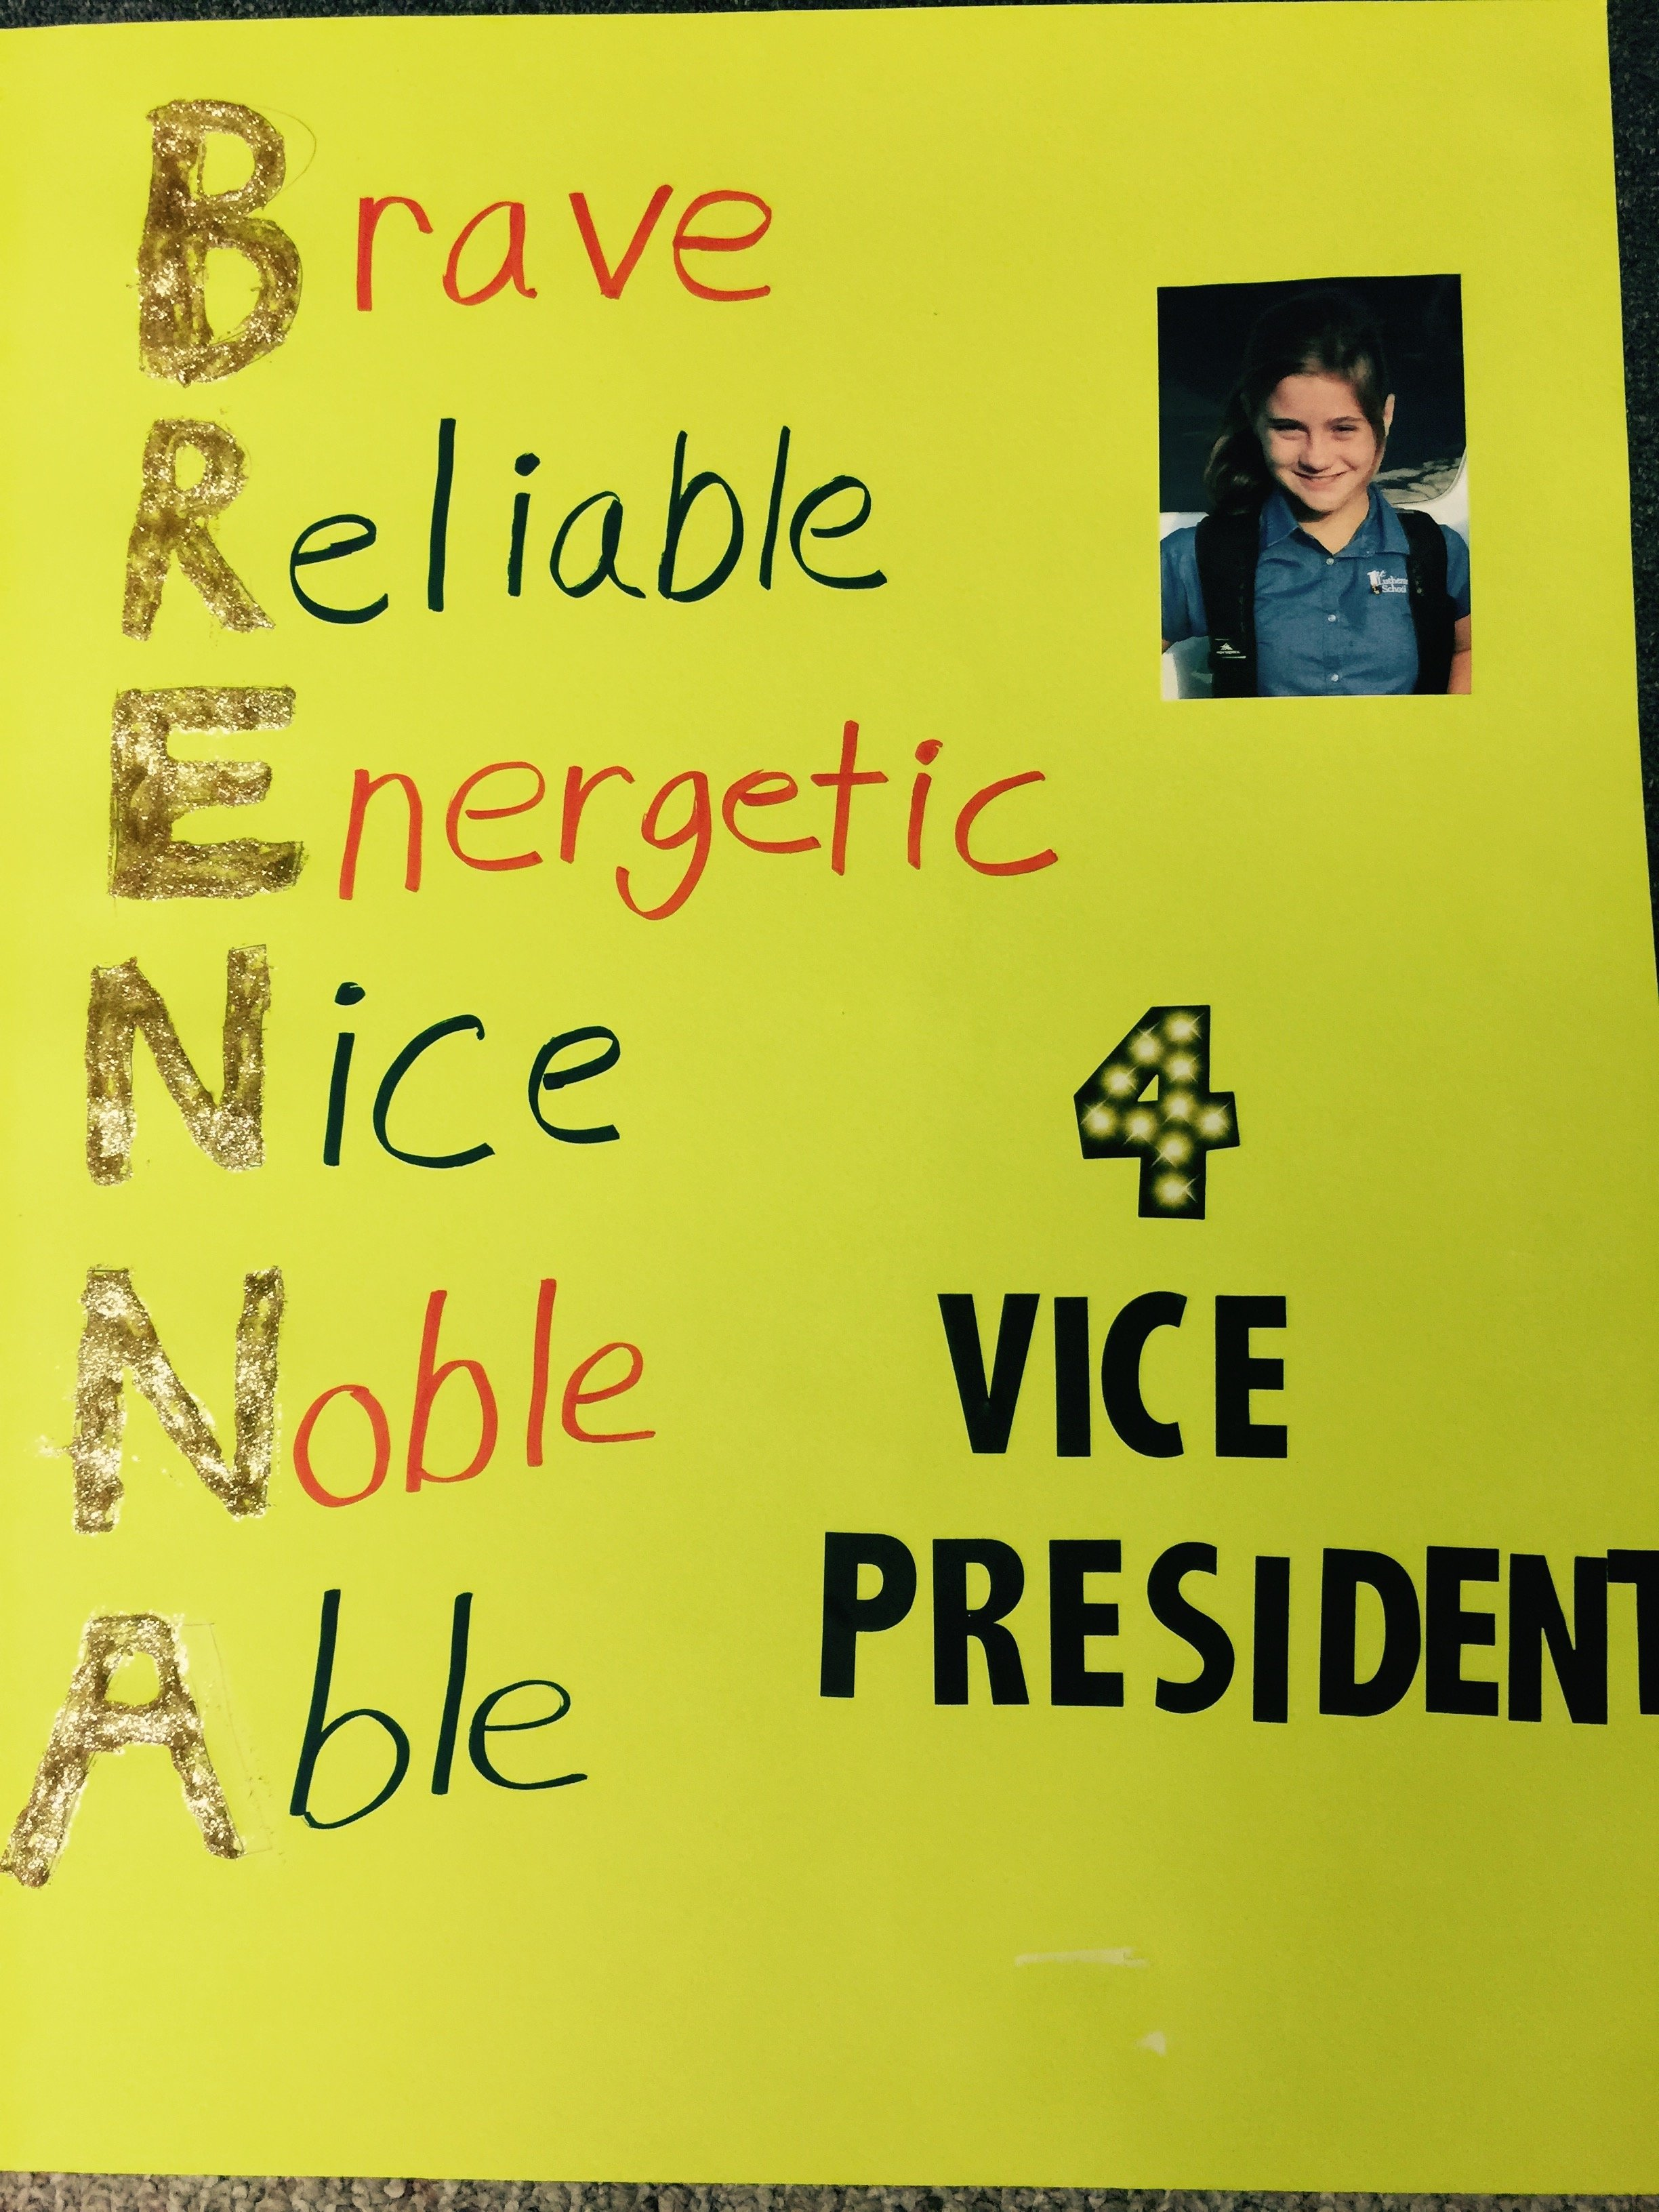 10 Fantastic Elementary School Student Council Ideas pinlea taylor on elementary school student council election 1 2021